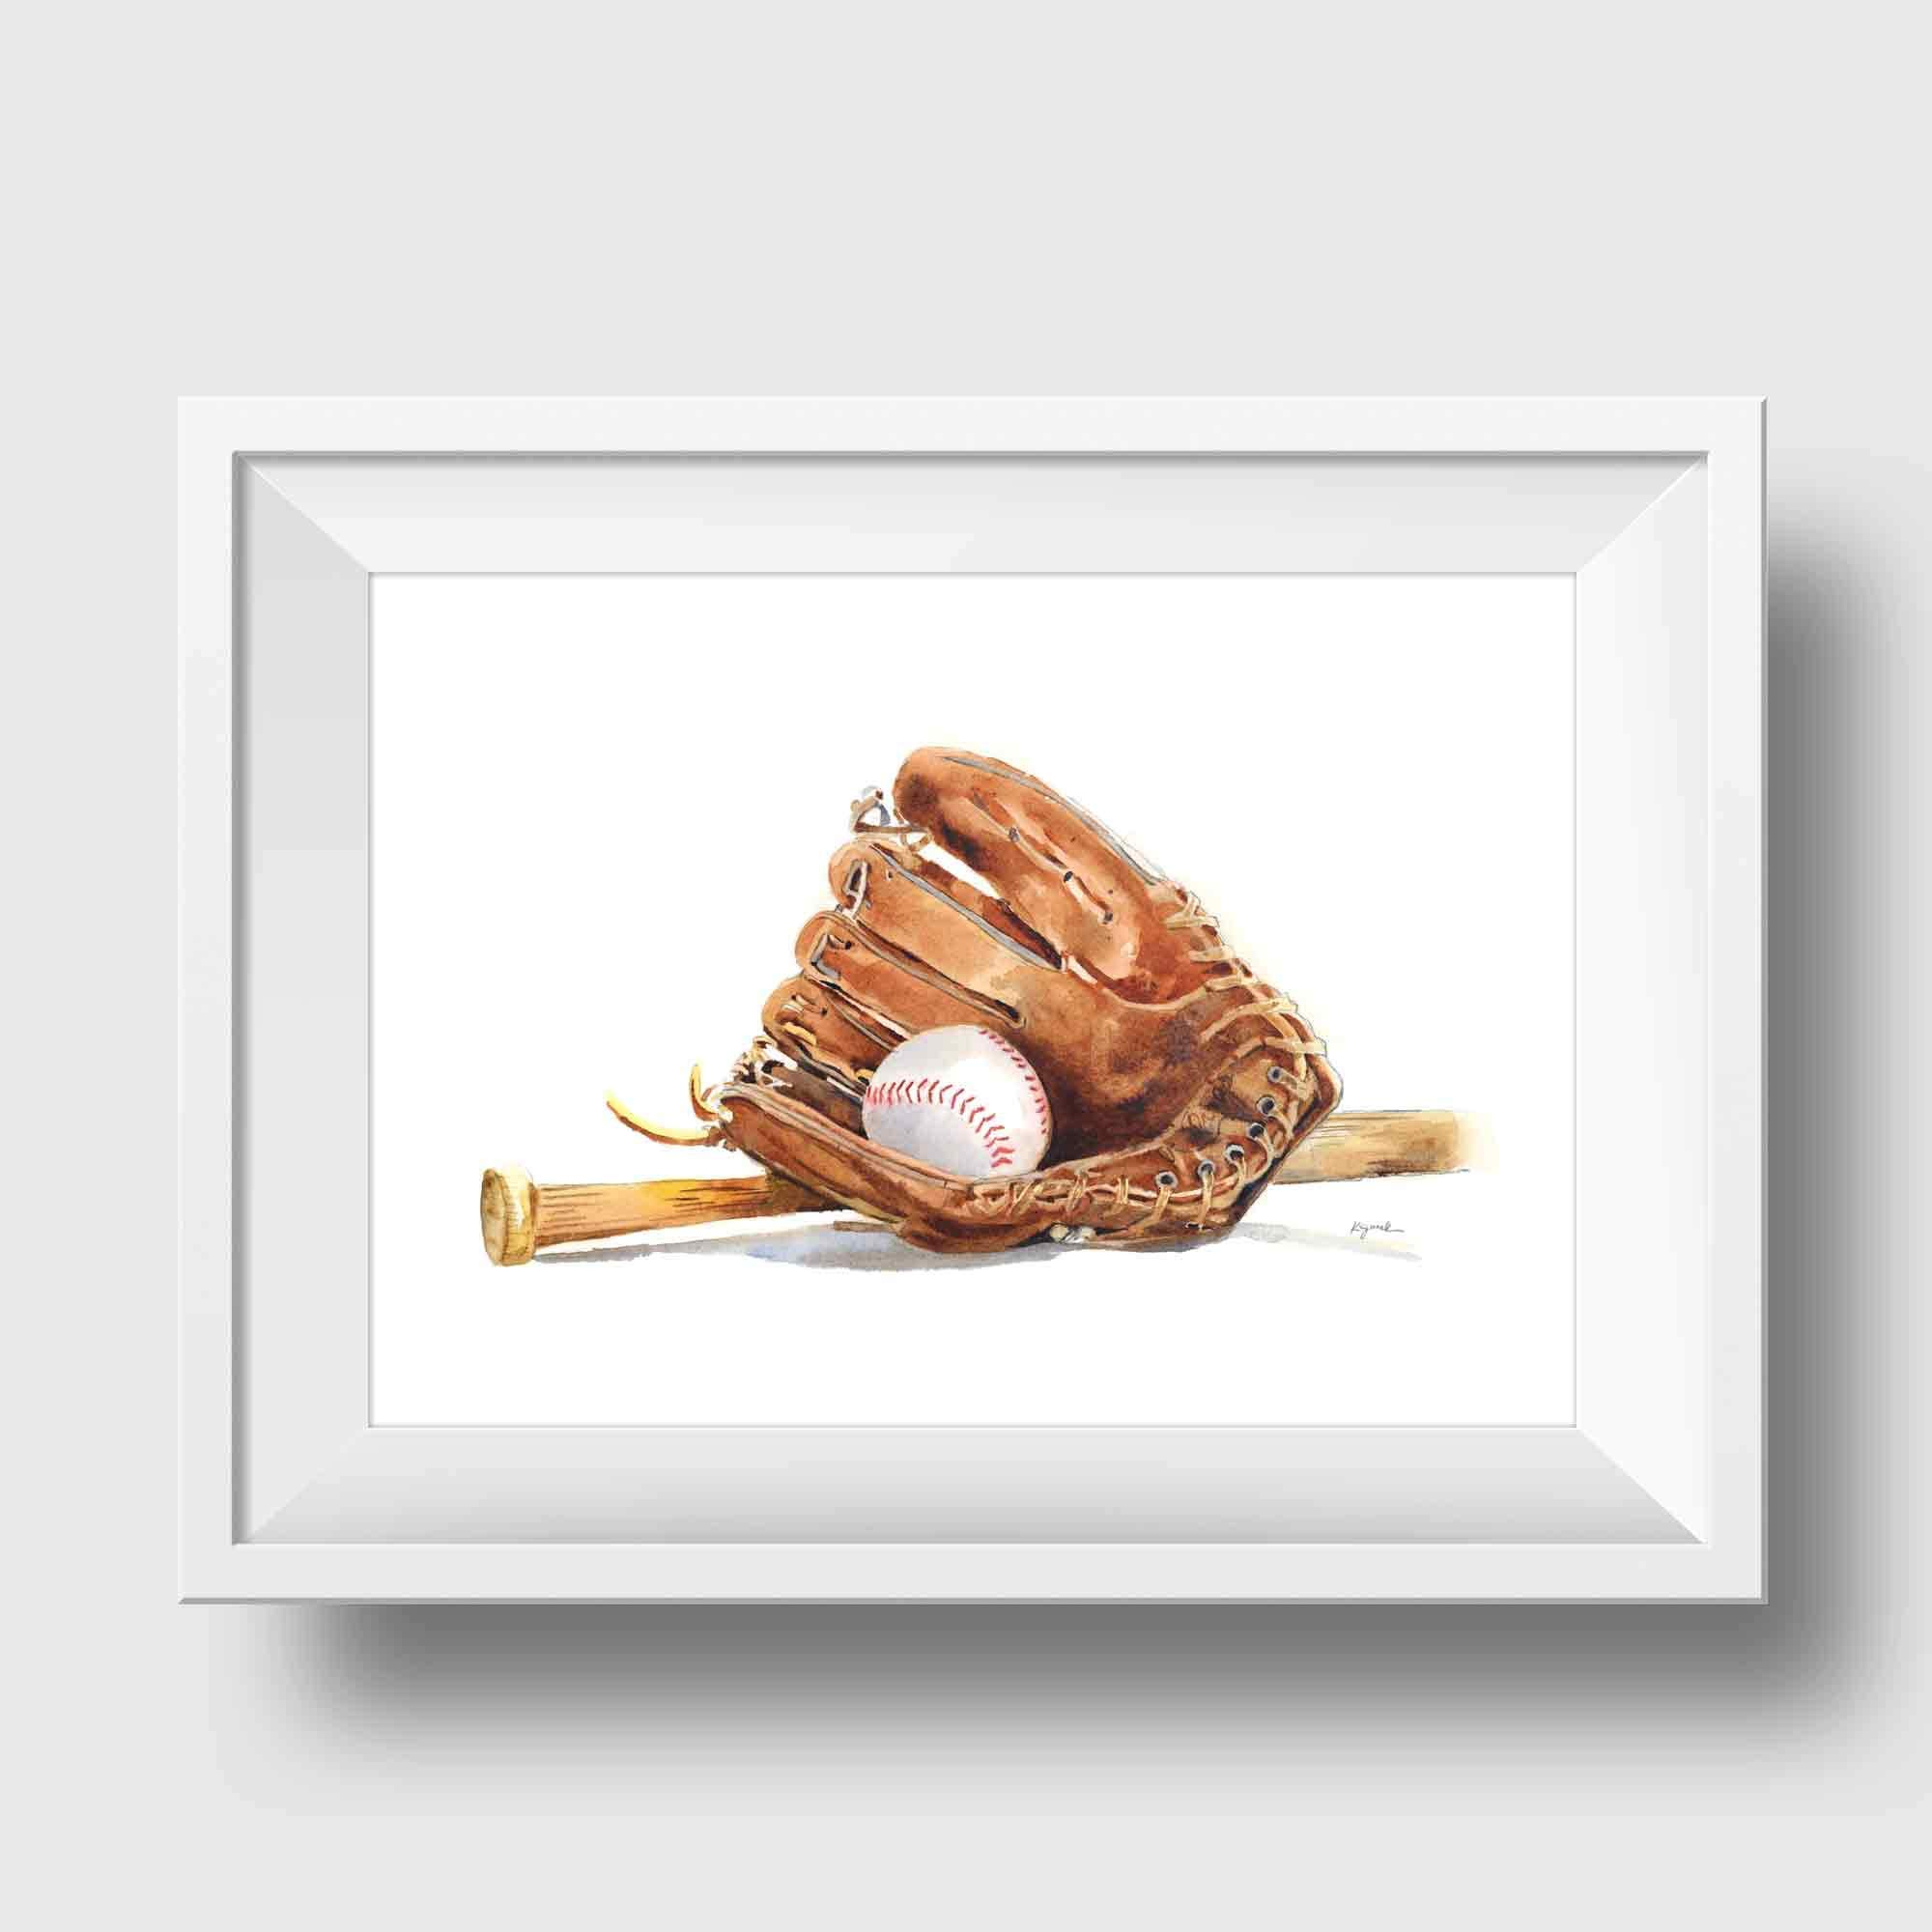 Baseball Bat and Glove Art Print | Sports Wall Decor for Boys Room | 8.5 x 11 Inch Gallery Quality Fine Art Giclee Print by Little Splashes of Color